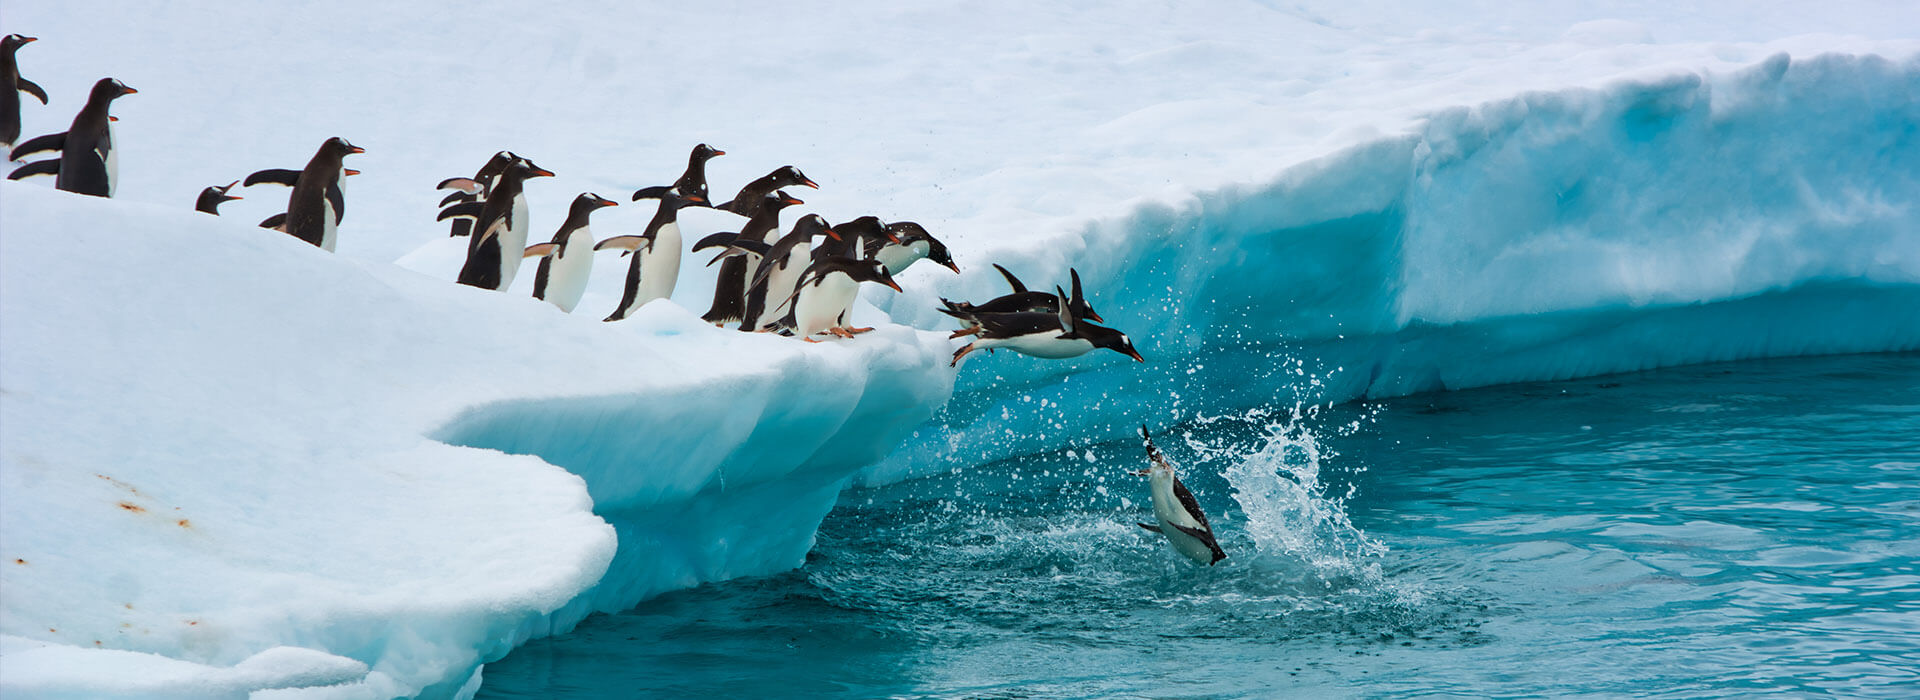 penguins jumping into water